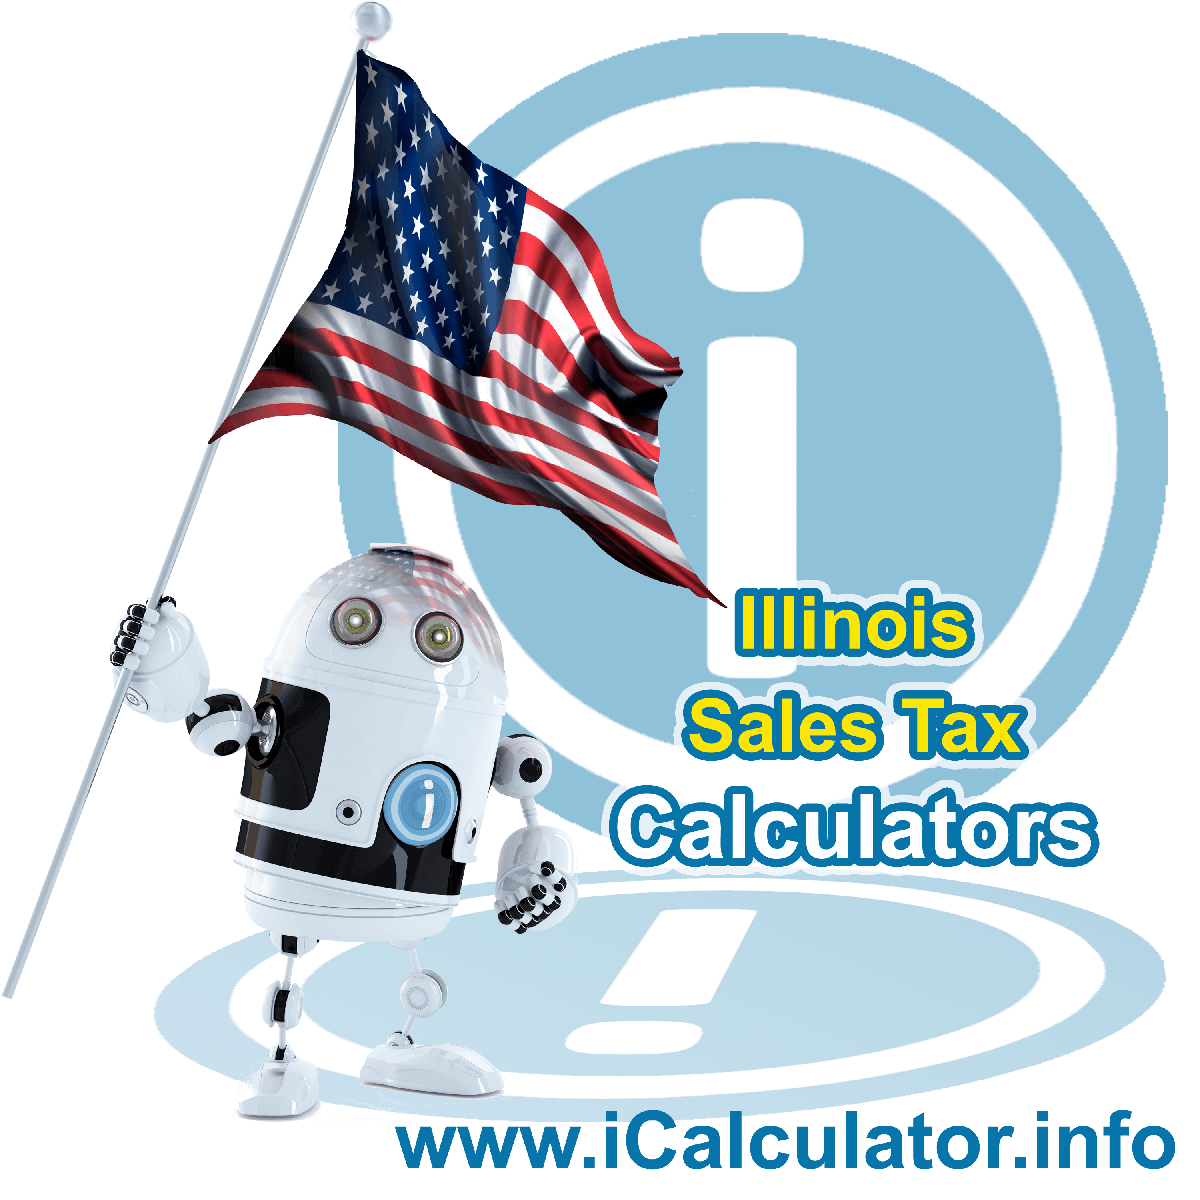 Tallula Sales Rates: This image illustrates a calculator robot calculating Tallula sales tax manually using the Tallula Sales Tax Formula. You can use this information to calculate Tallula Sales Tax manually or use the Tallula Sales Tax Calculator to calculate sales tax online.